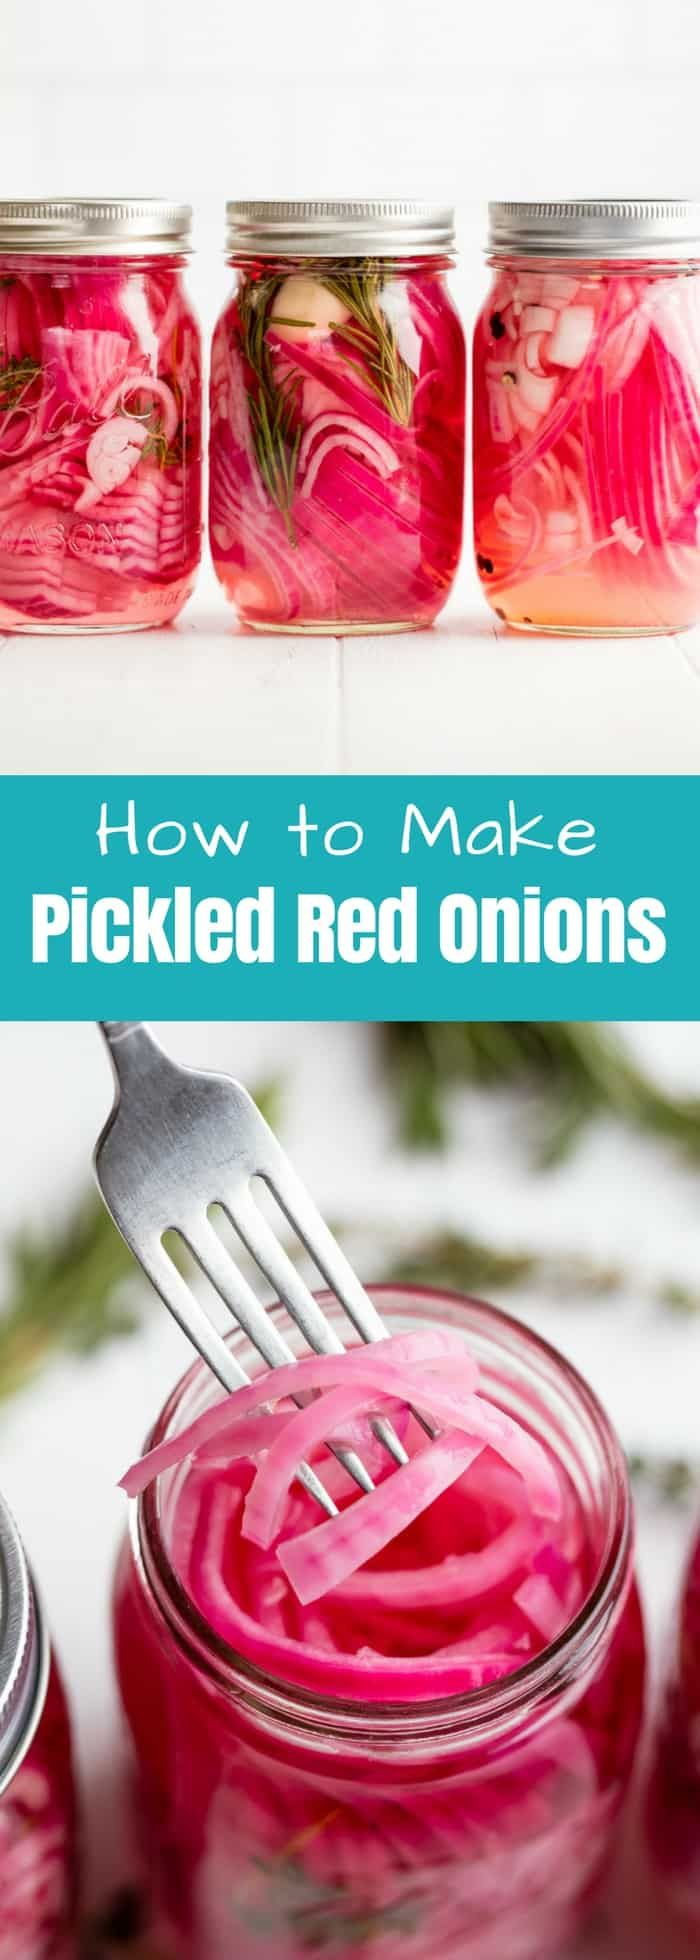 888 best recipes images on Pinterest | Baking center, Chicken and ...